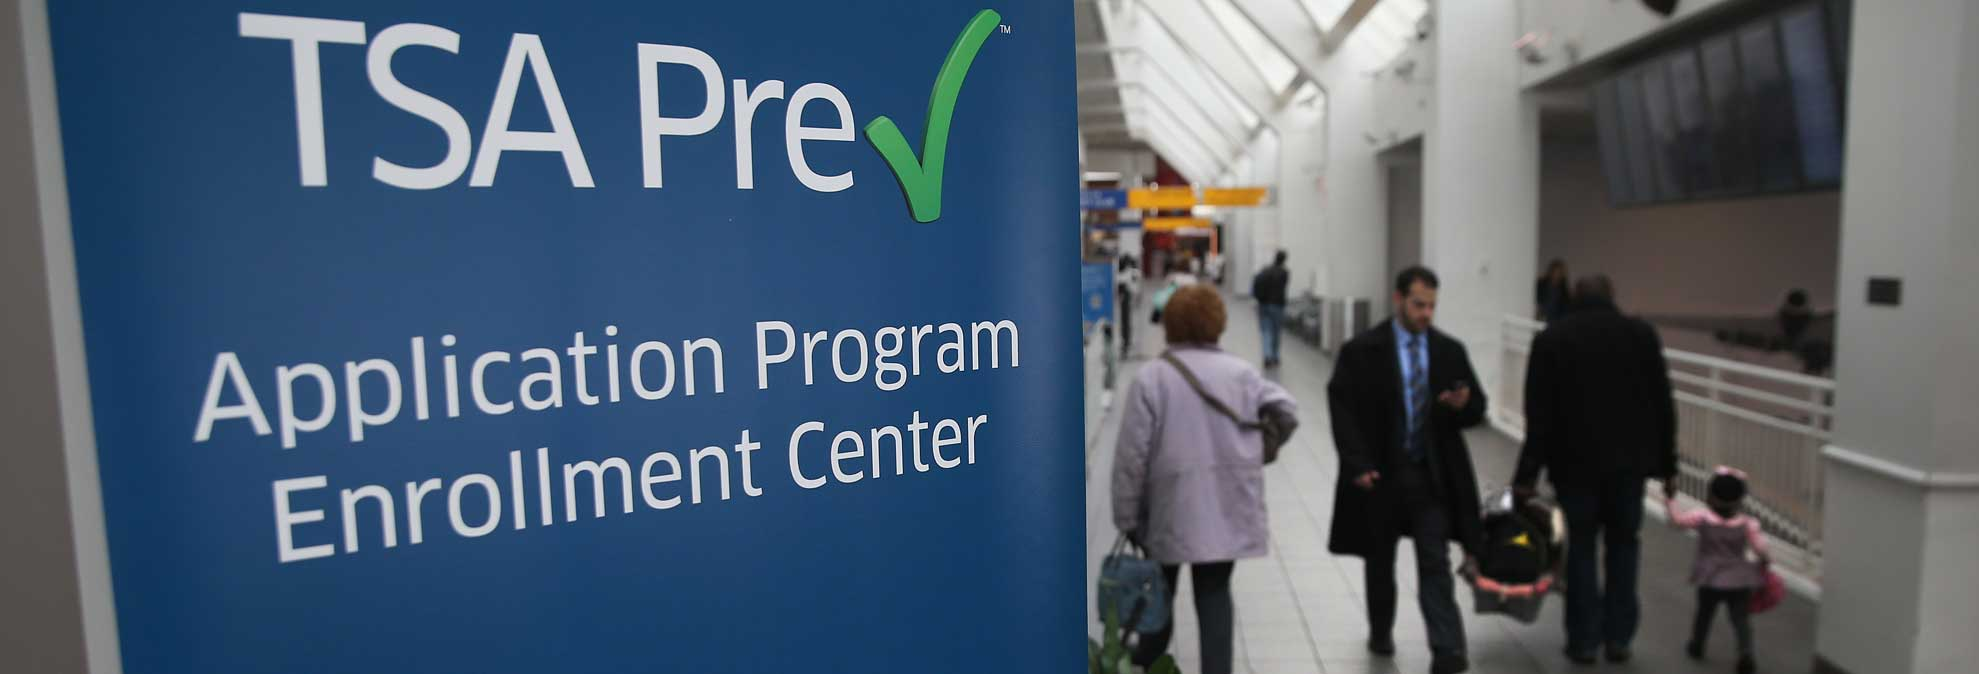 Travel Easier With Tsa Precheck Or Global Entry Consumer